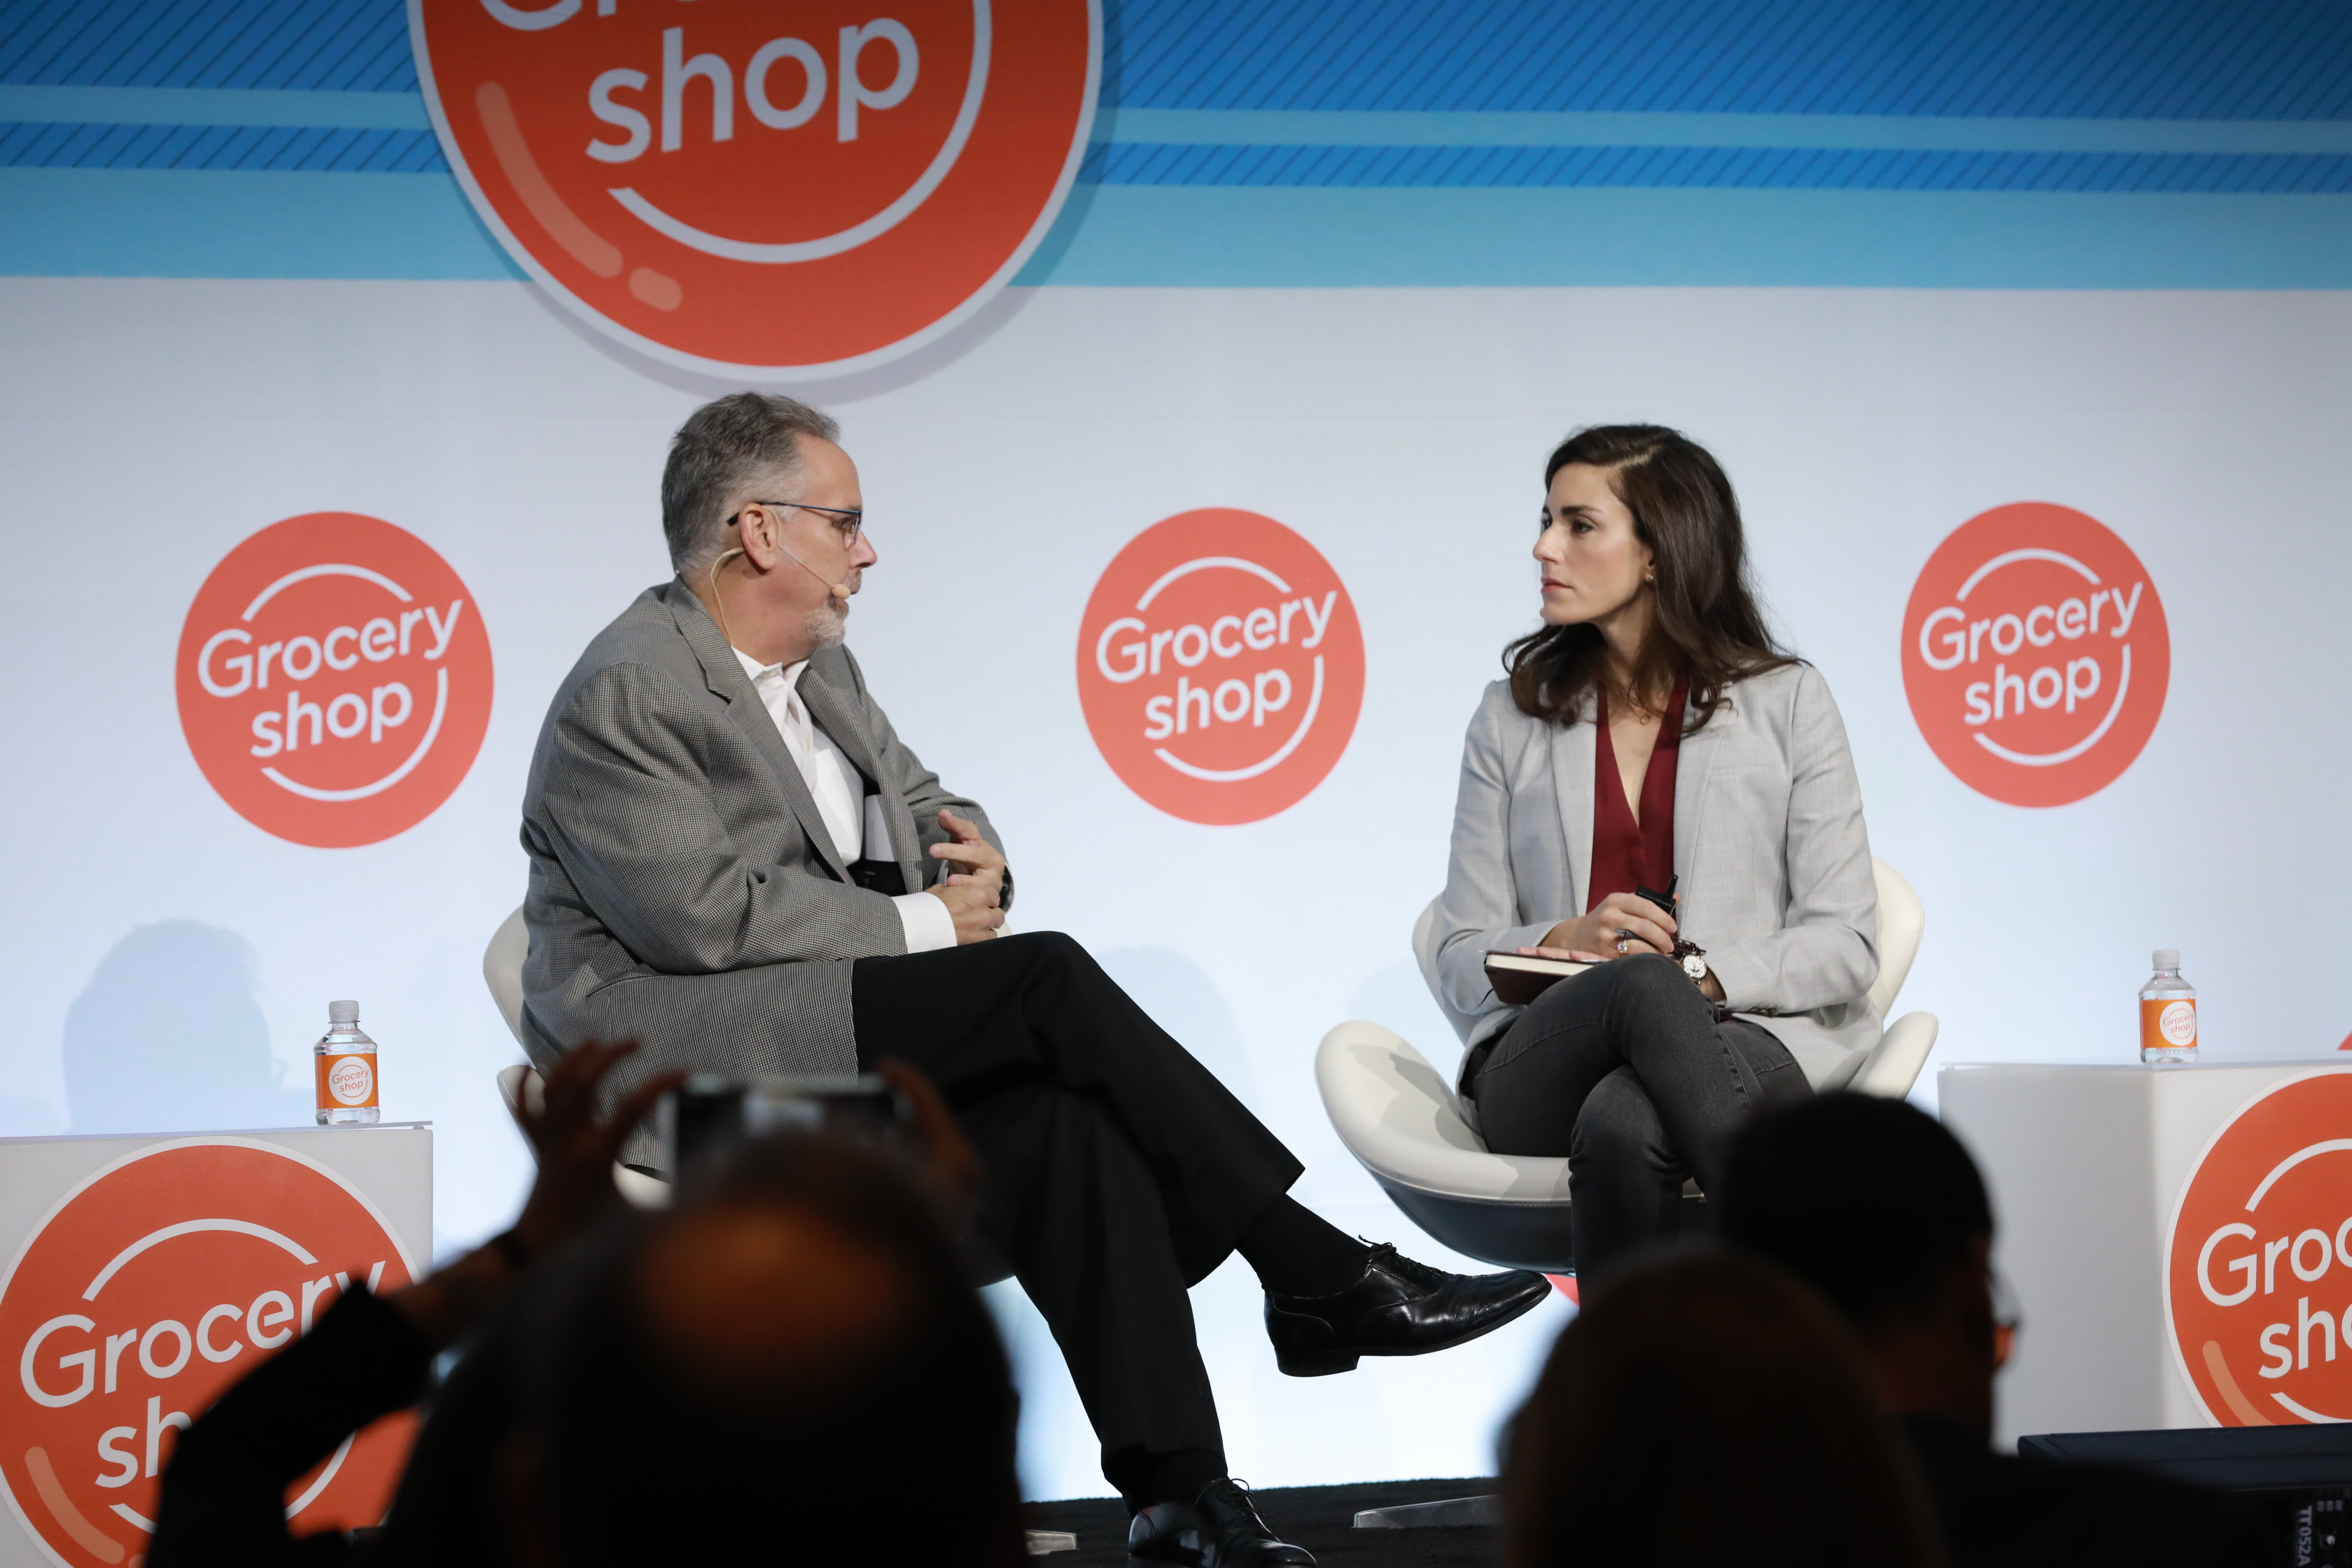 The Myth of Touching Groceries & More From GroceryShop